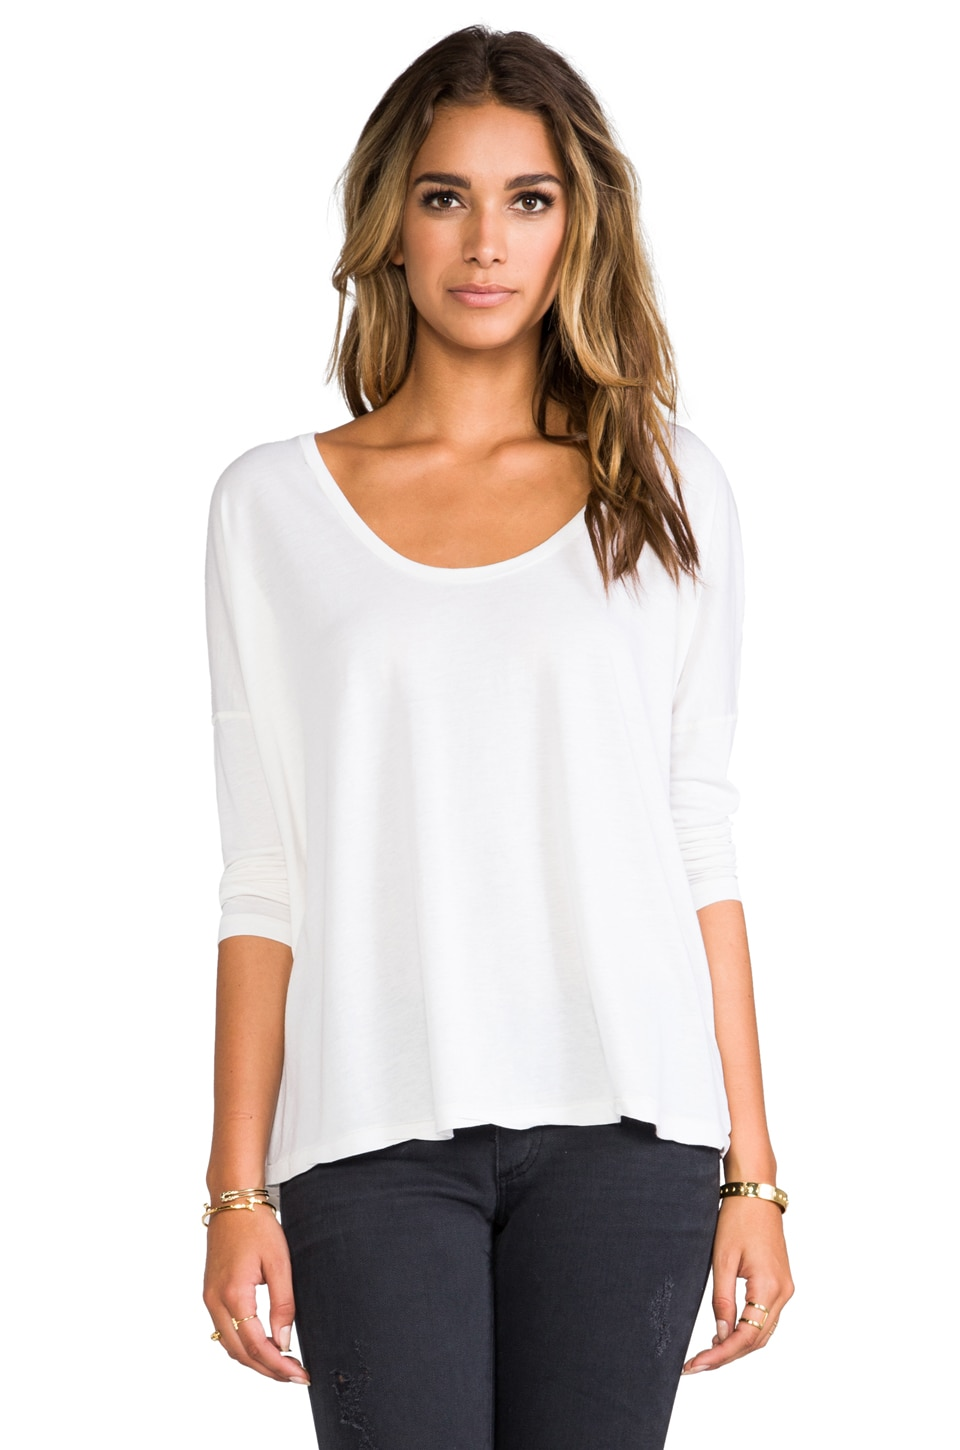 AG Adriano Goldschmied Boxy Scoop Tee in White